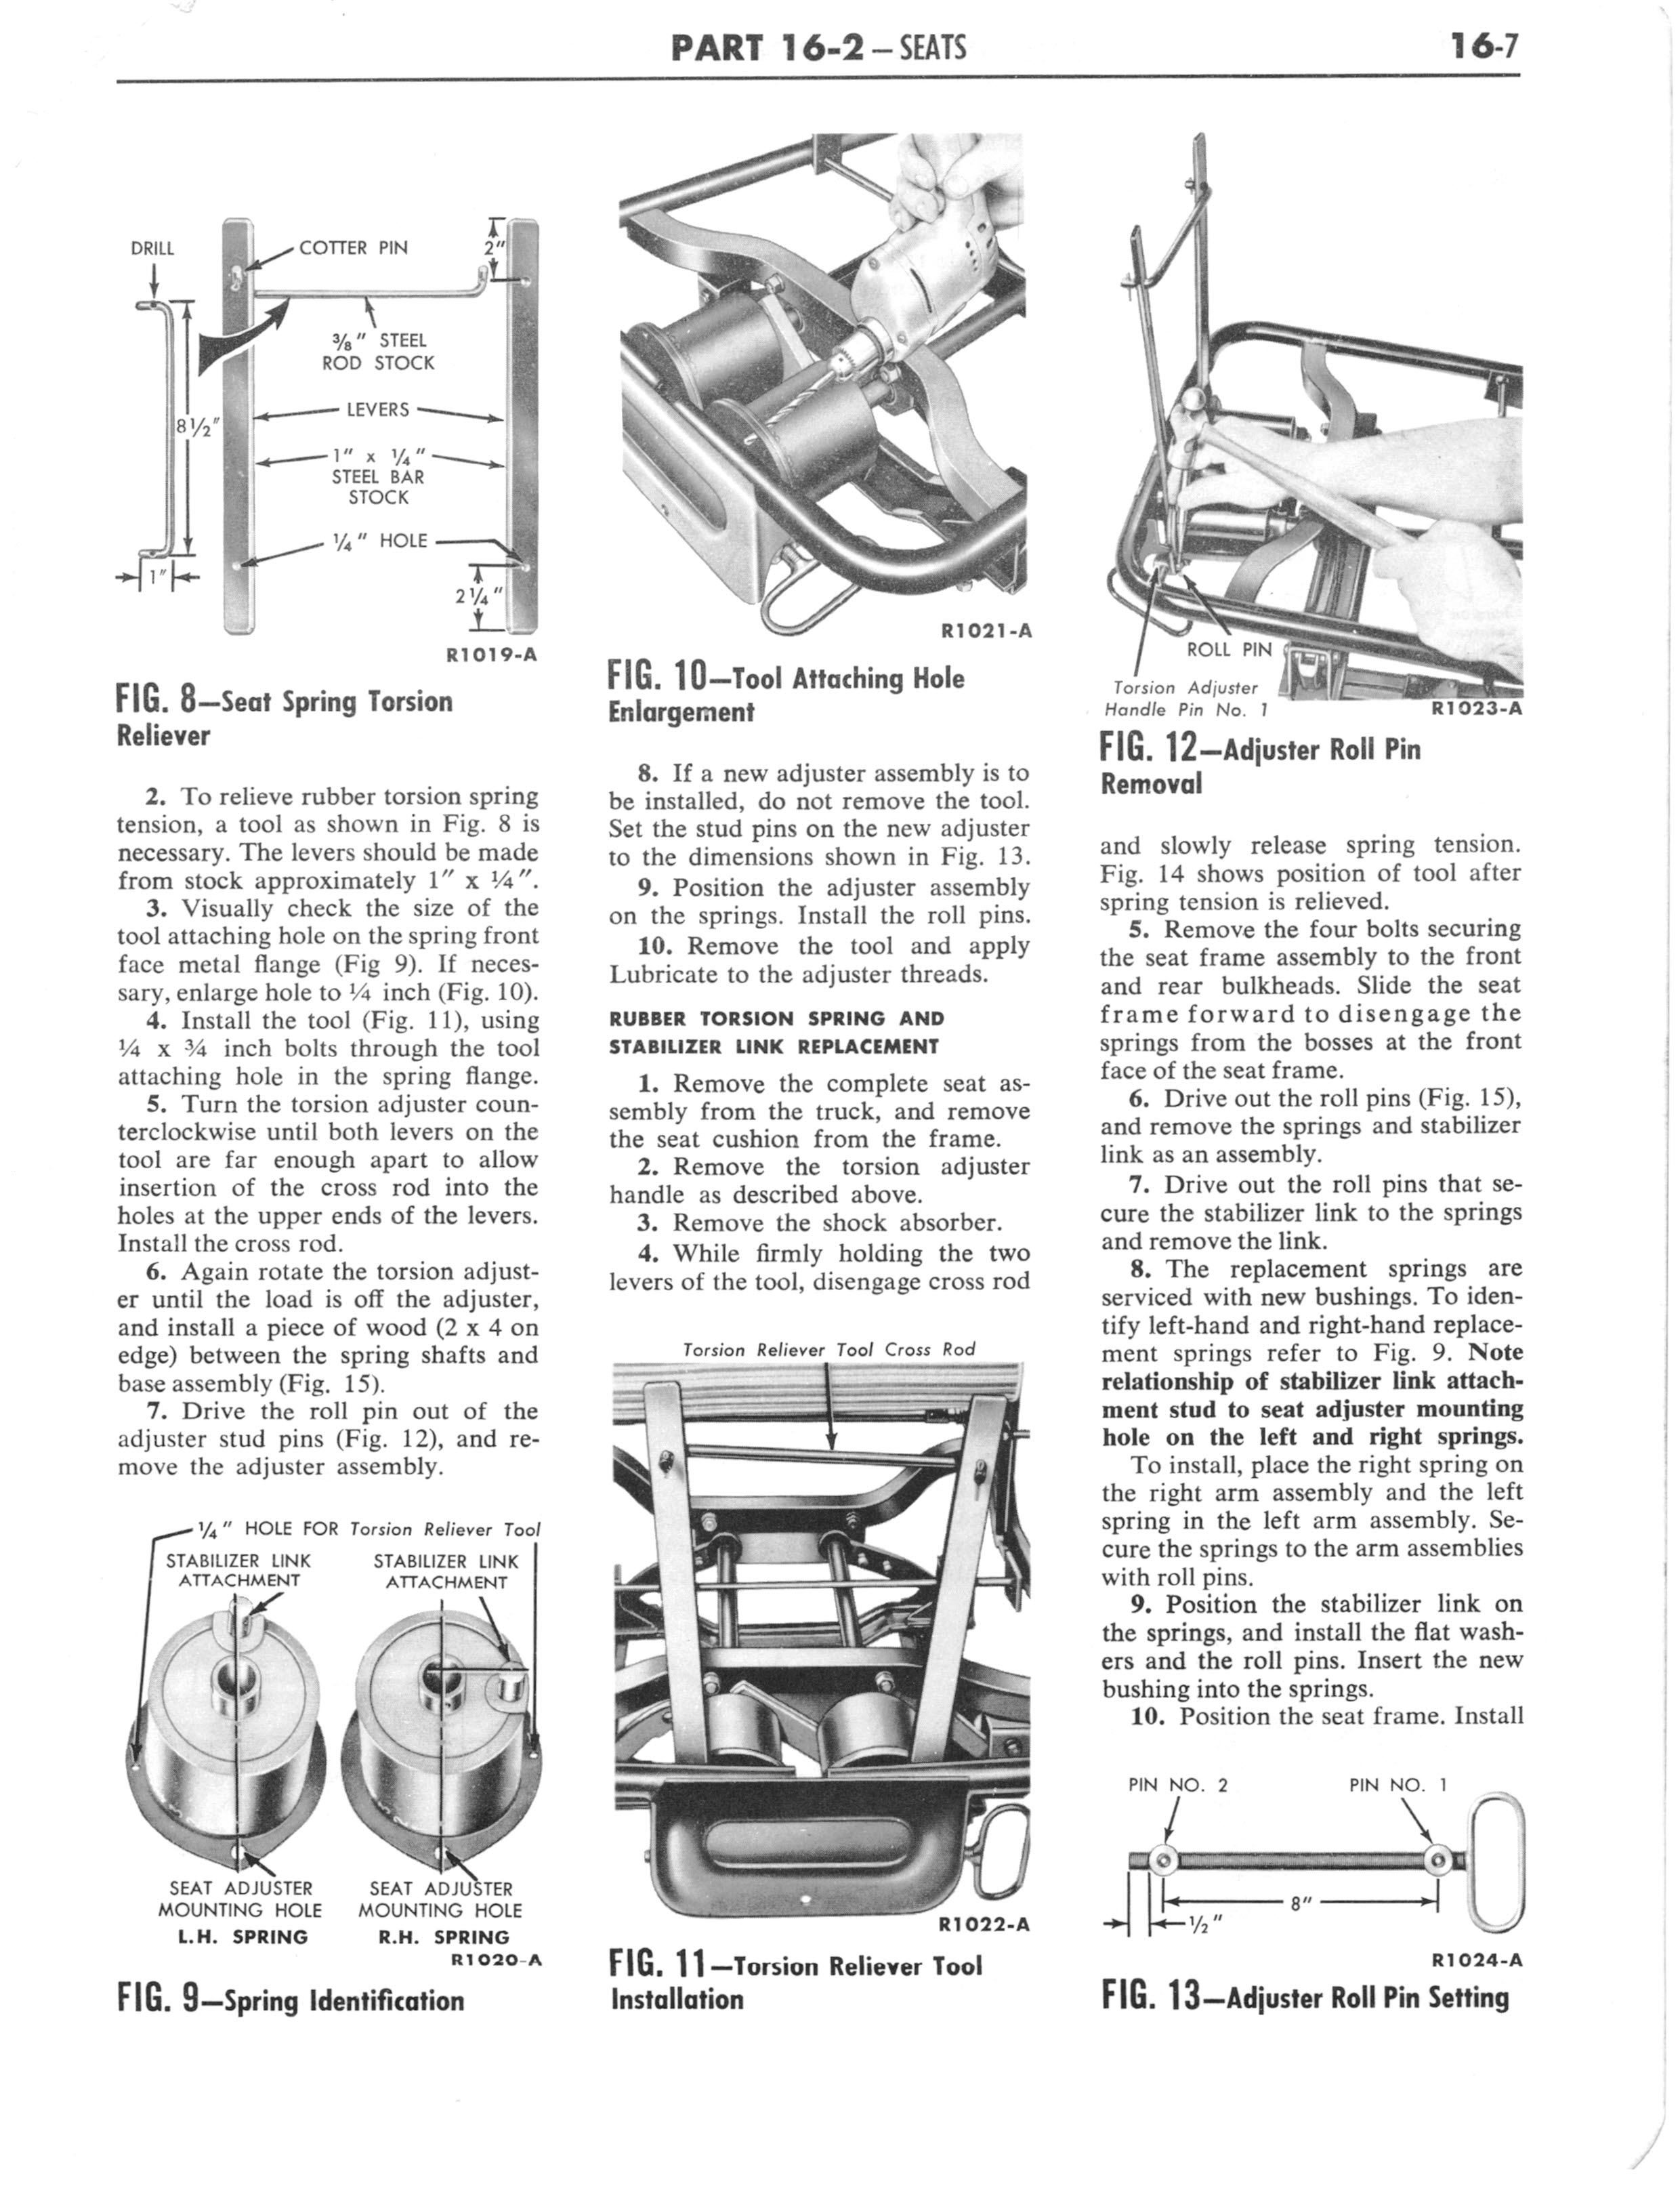 1960 Ford and Mercury Truck Shop Manual page 618 of 641